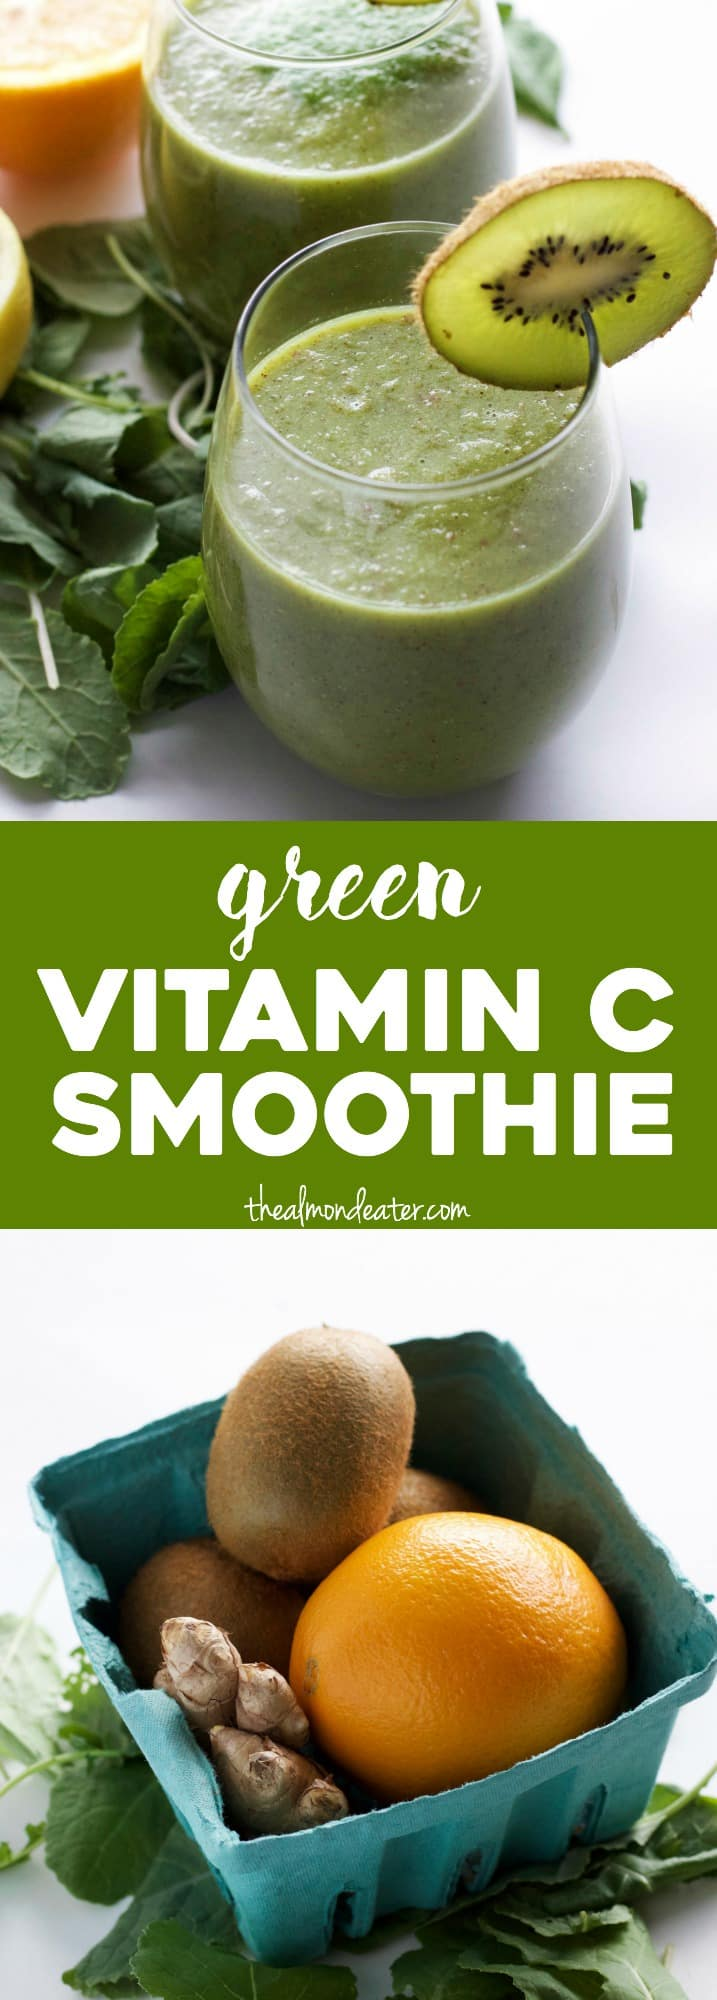 A tasty smoothie PACKED with Vitamin C! The perfect way to start your day | thealmondeater.com